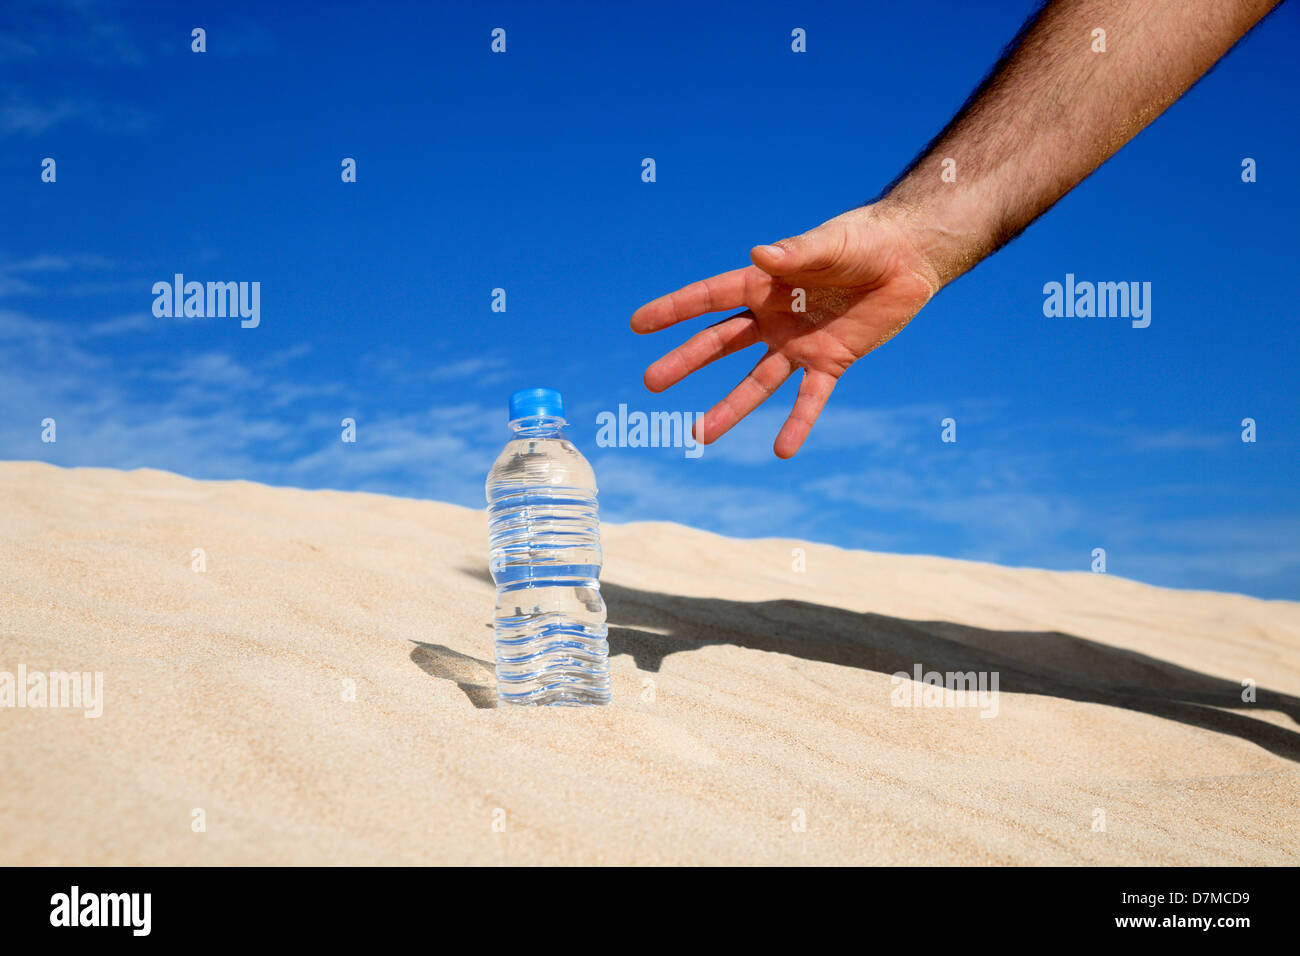 Thirst, conceptual image Stock Photo